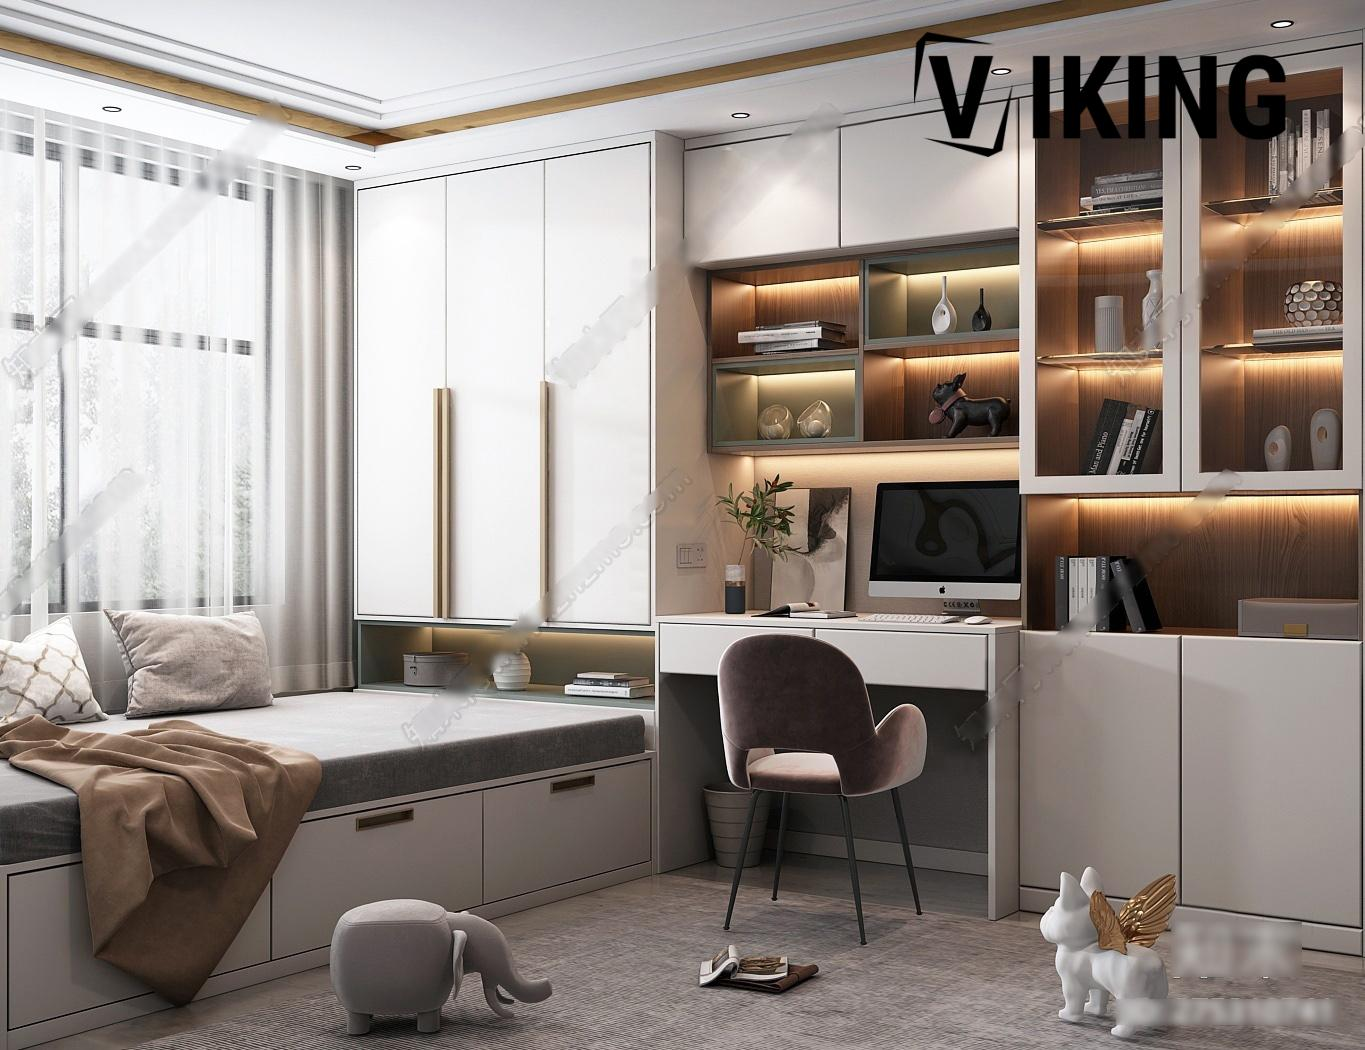 4468.Children room Scene Sketchup File free download by Cuong Covua